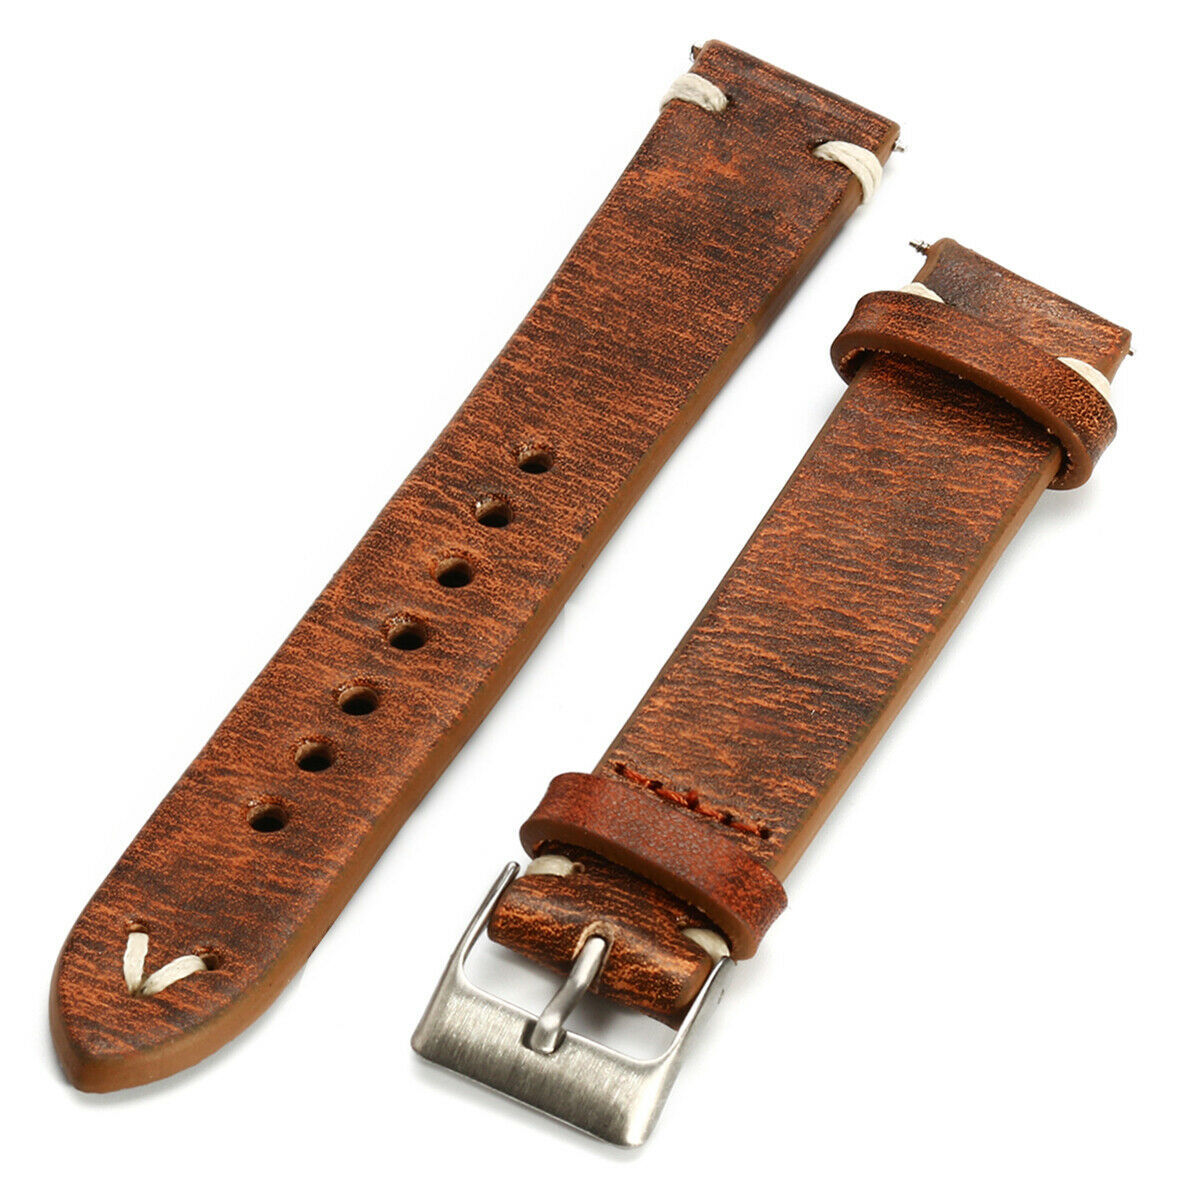 Primary image for Straps Vintage Style Distressed Leather Wome/Men Watch Band Strap with Stitching